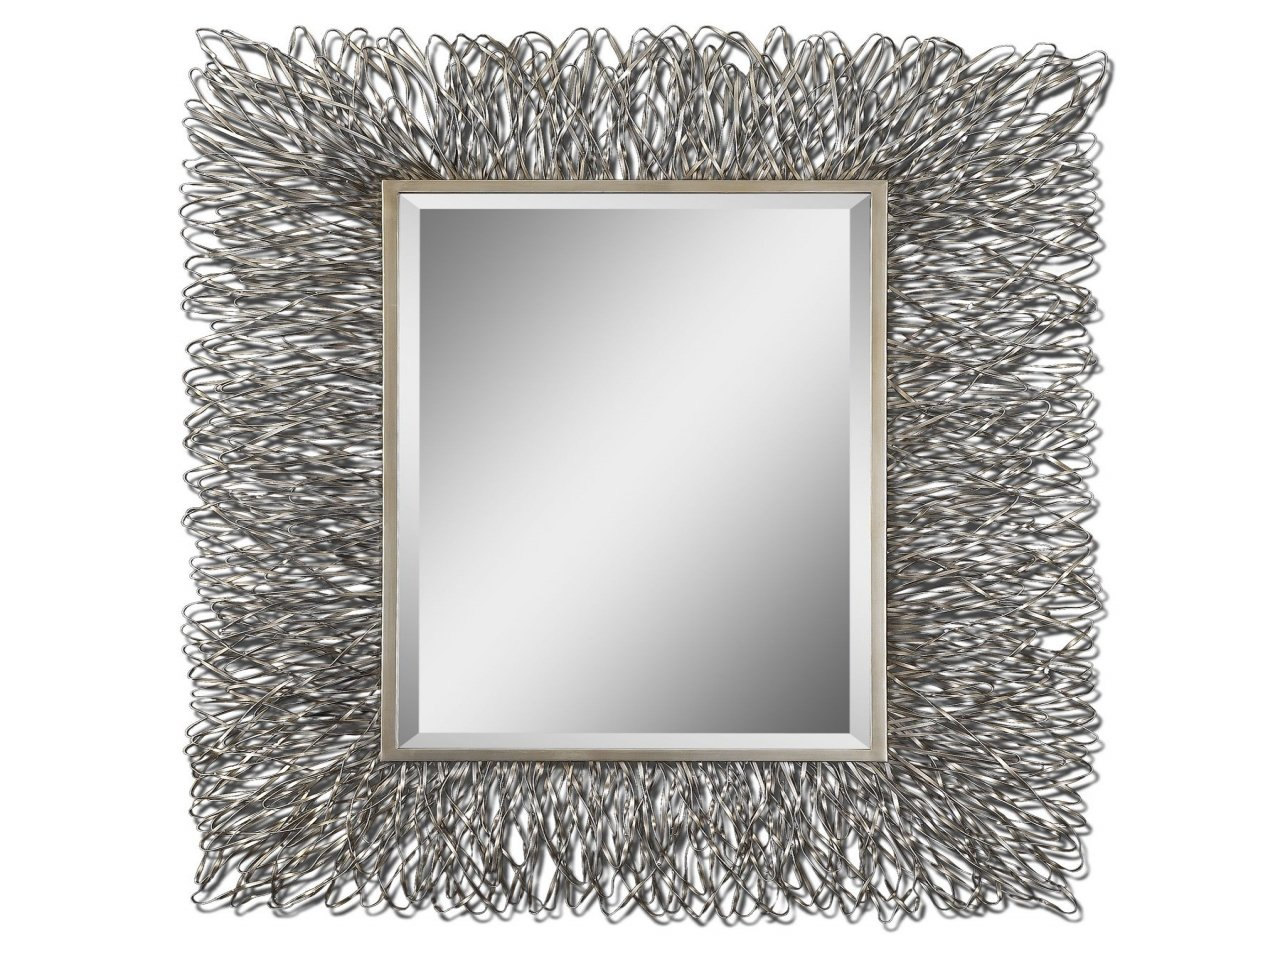 Decorative Wall Mirrors Wade Logan Decorative Wall Mirror intended for Boyers Wall Mirrors (Image 15 of 30)